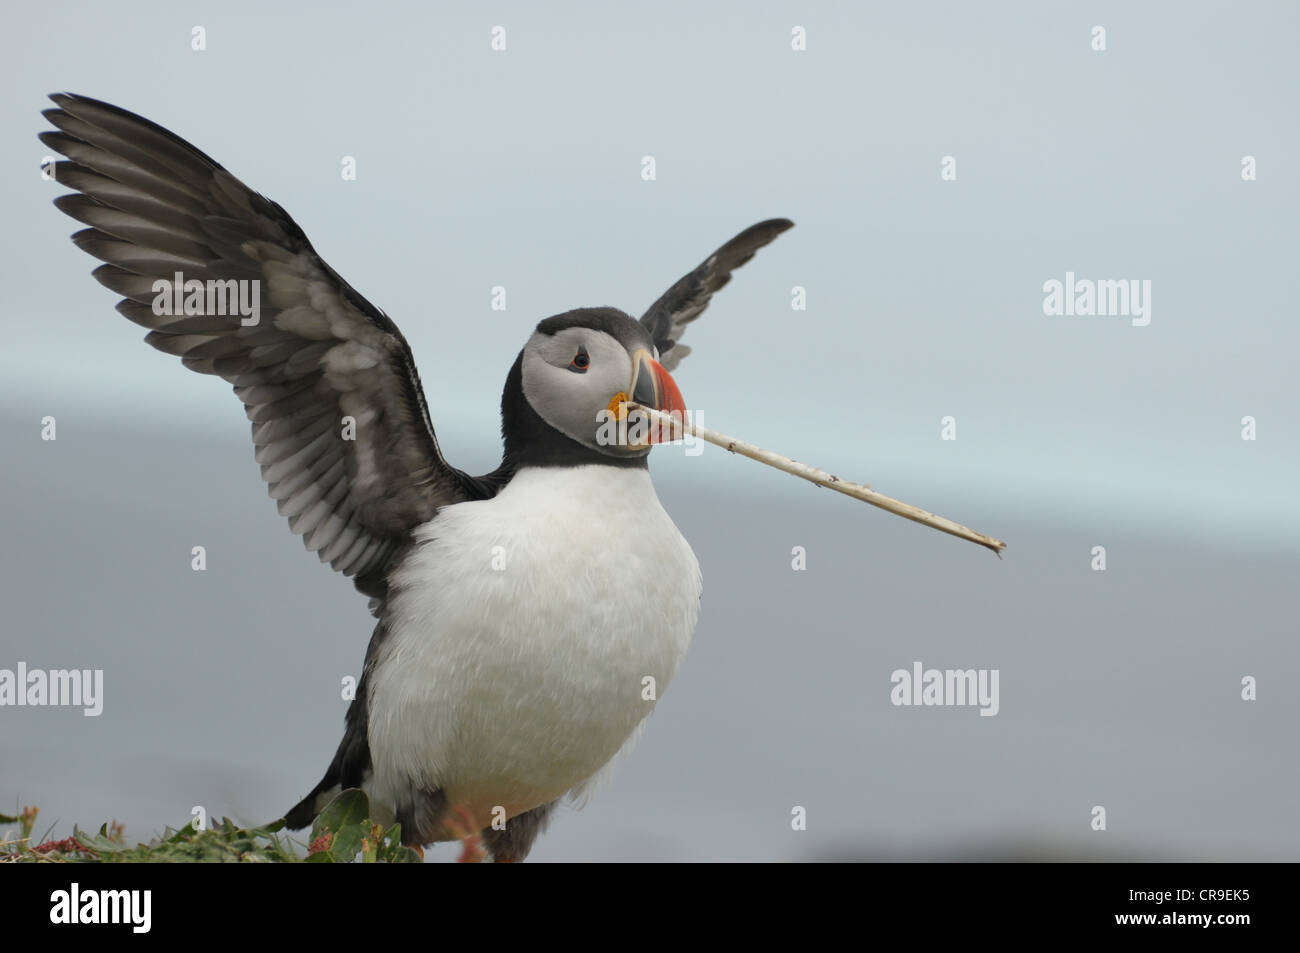 Puffin, Fratercula arctica, with wings spread and twig in its mouth. - Stock Image